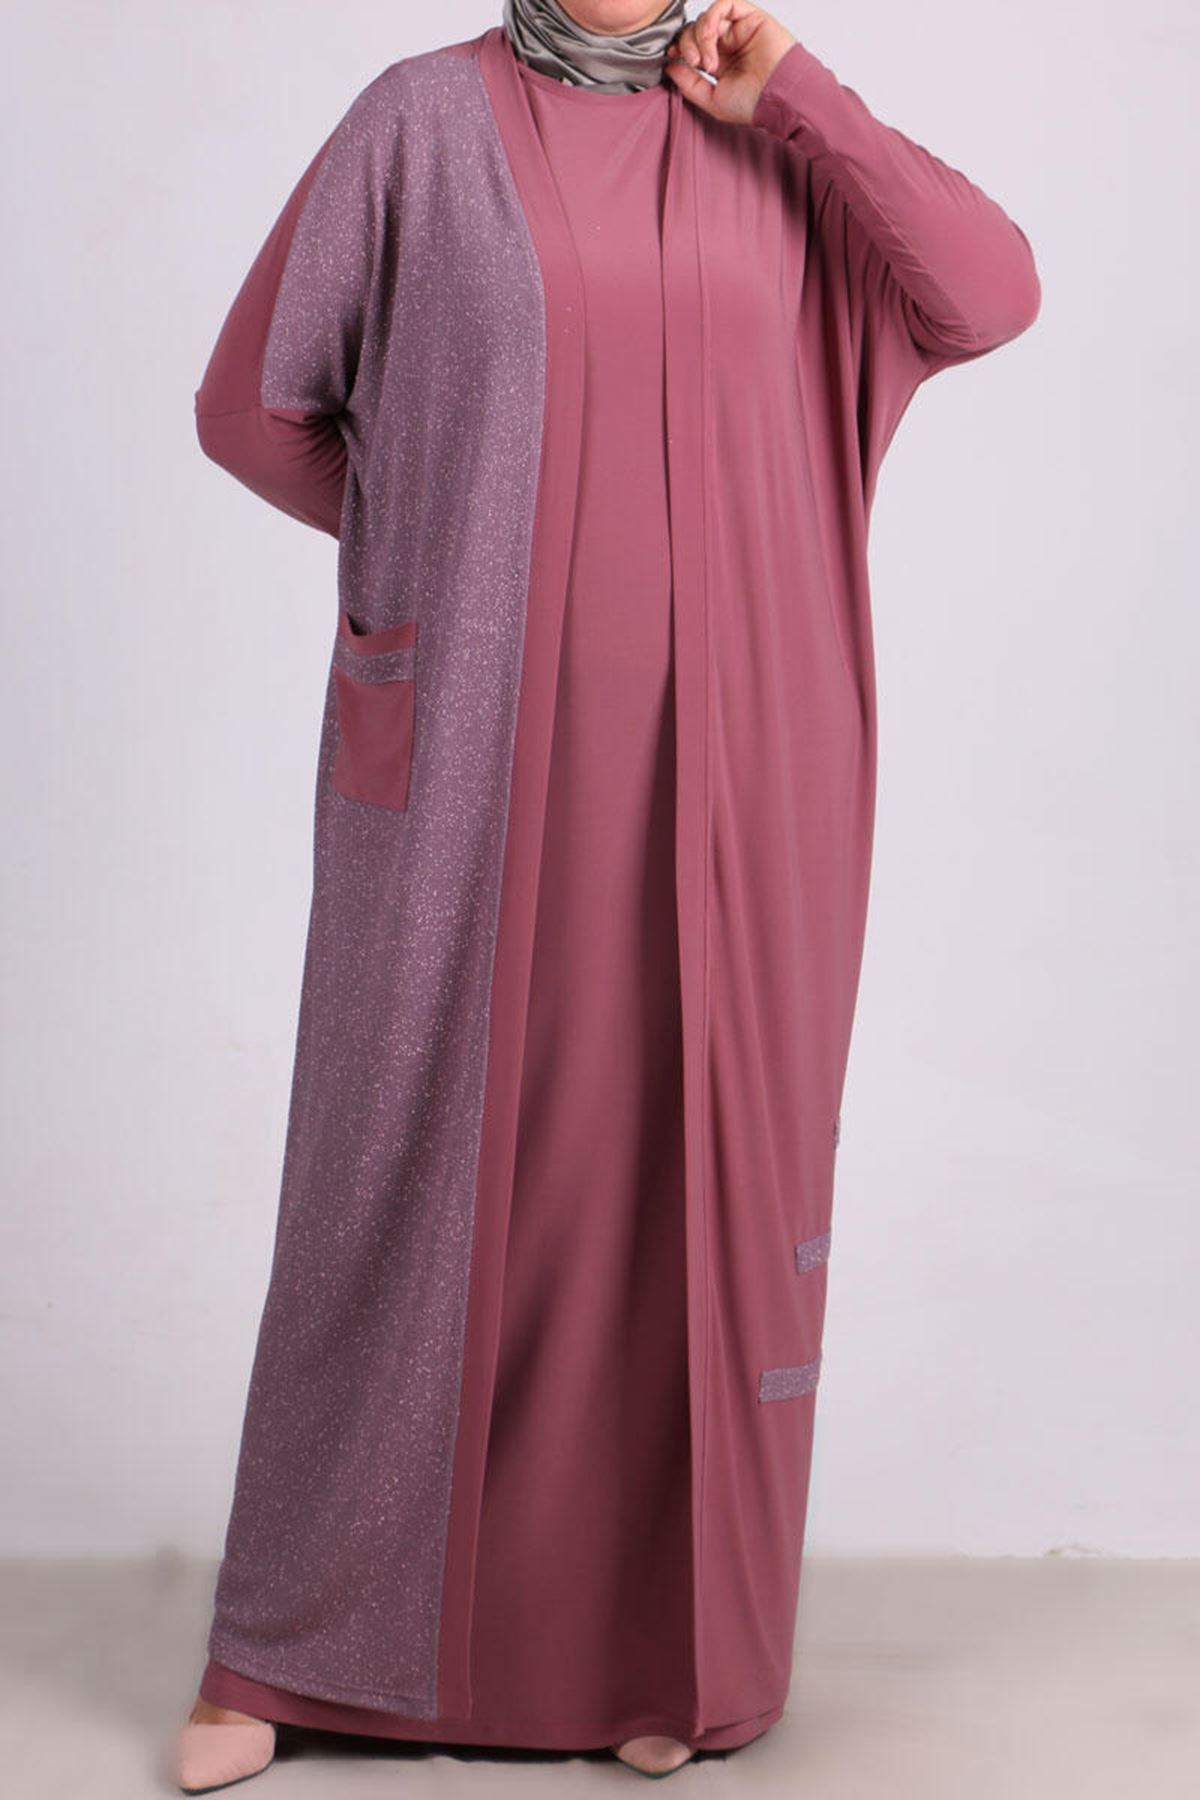 7213 Plus Size Two Piece Set with Dress and Jacket - Dusty Rose